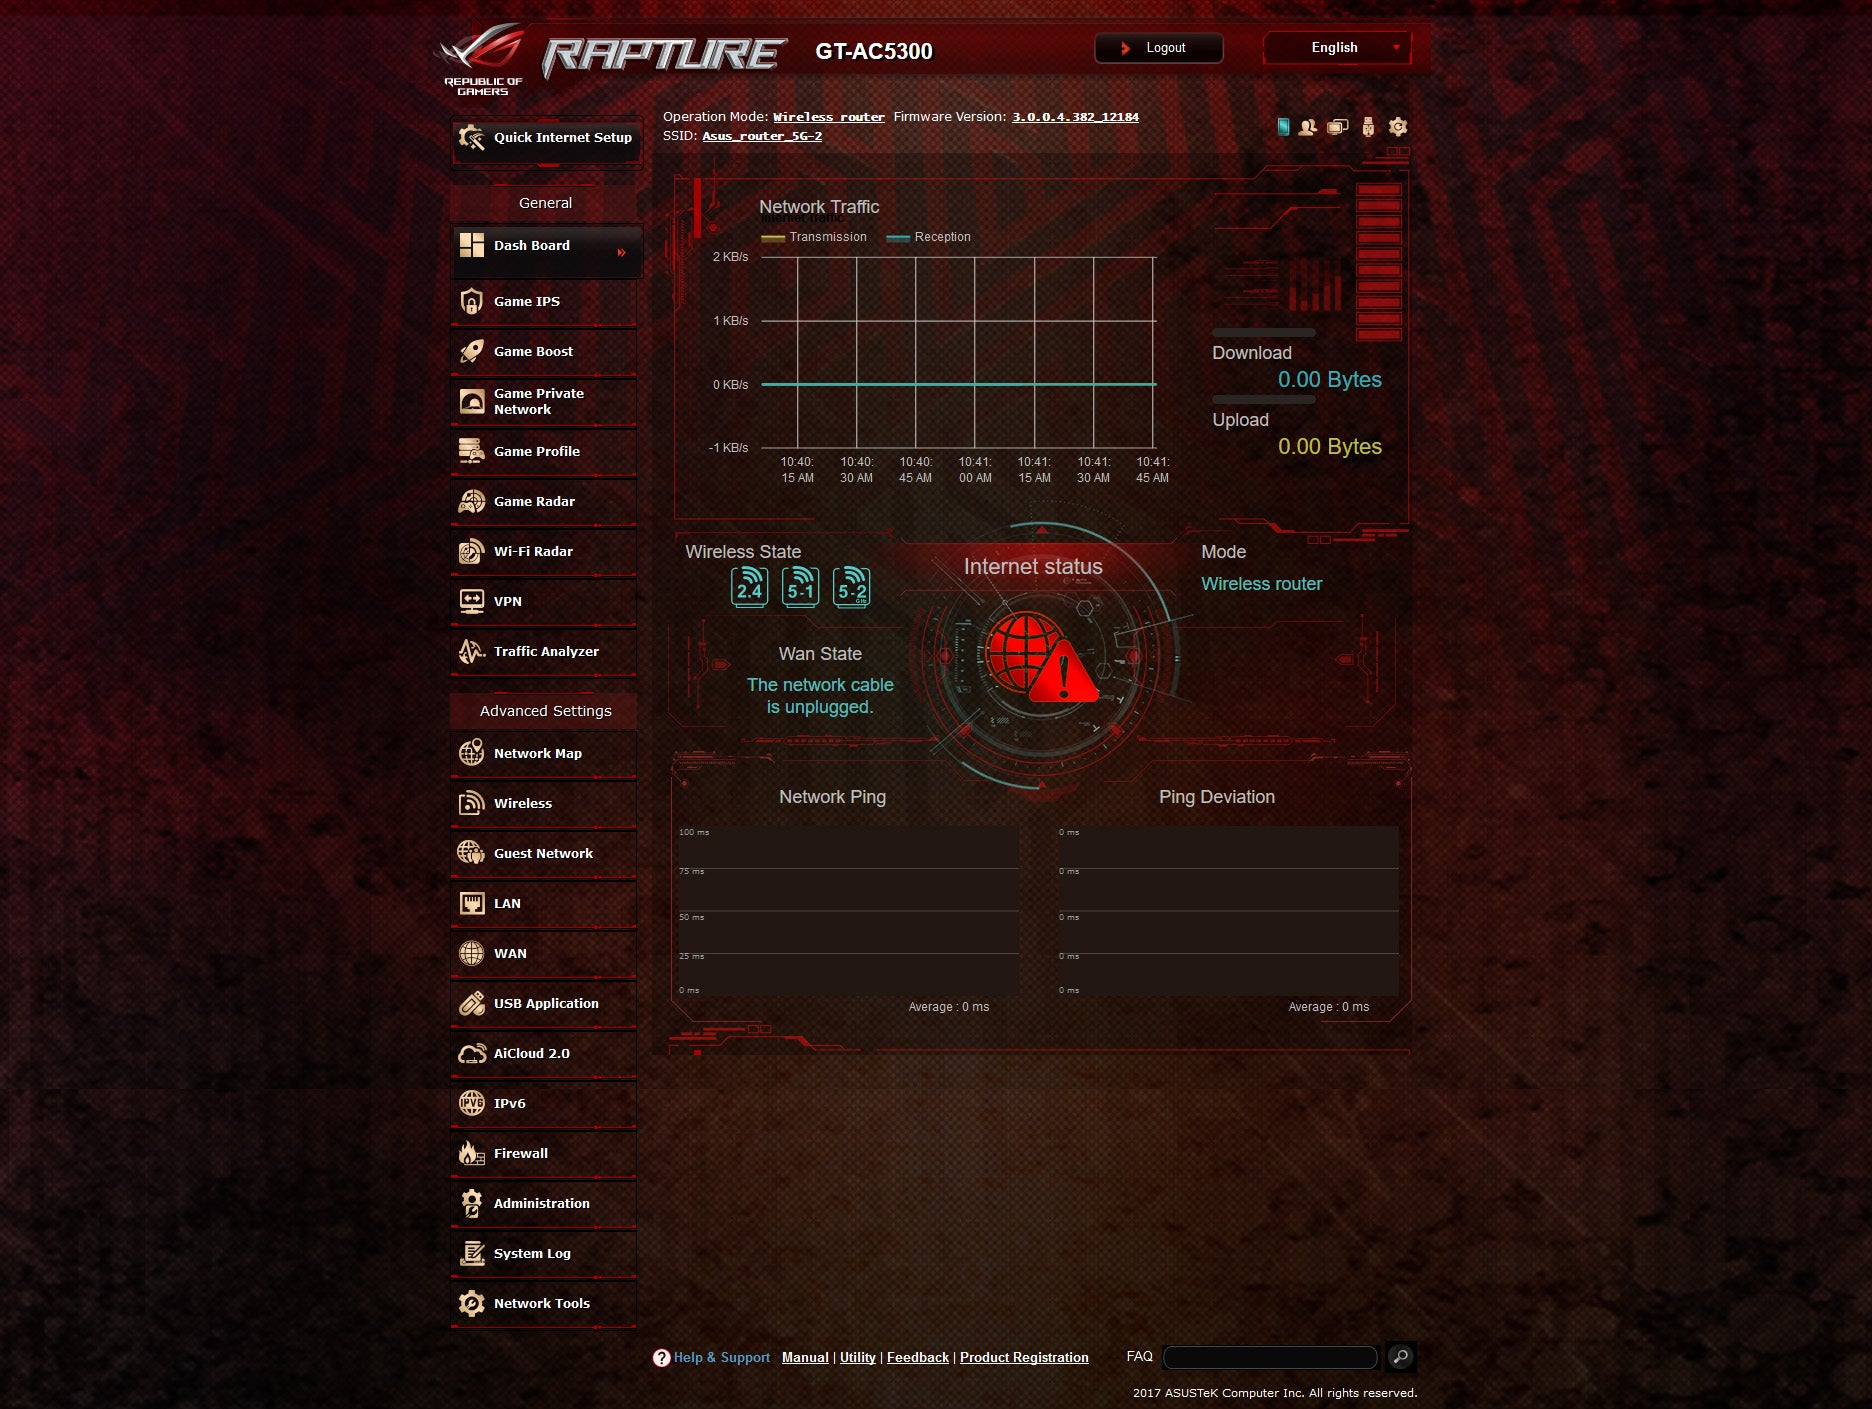 Asus ROG Rapture GT-AC5300 Review | Trusted Reviews